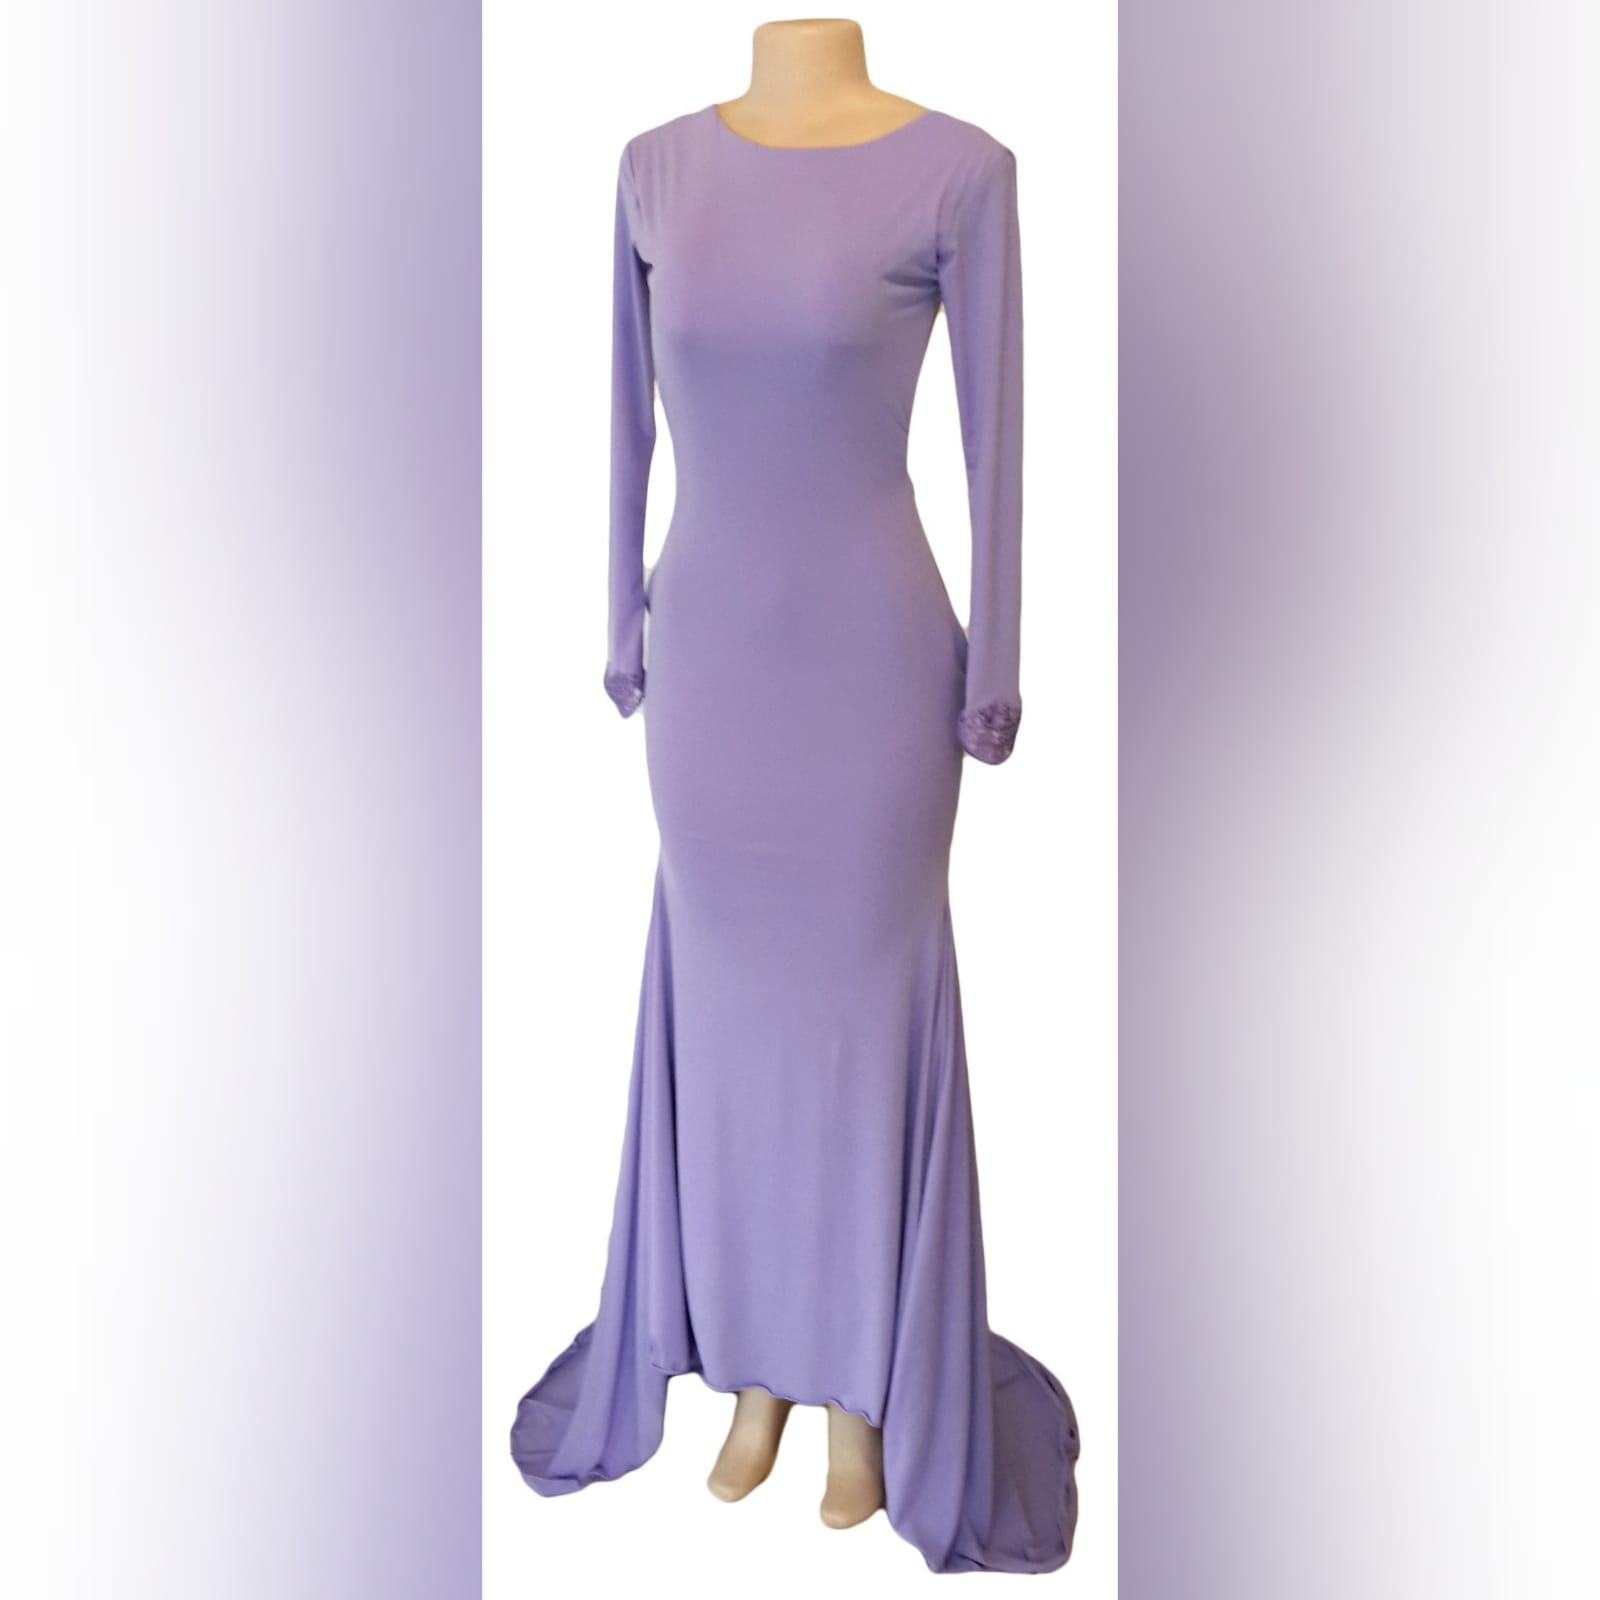 Body fitting lilac soft mermaid prom dress and a jewel neckline 4 body fitting lilac soft memaid prom dress and a jewel neckline. Low open square back. With a train and long sleeves. Sleeves finished with lace.